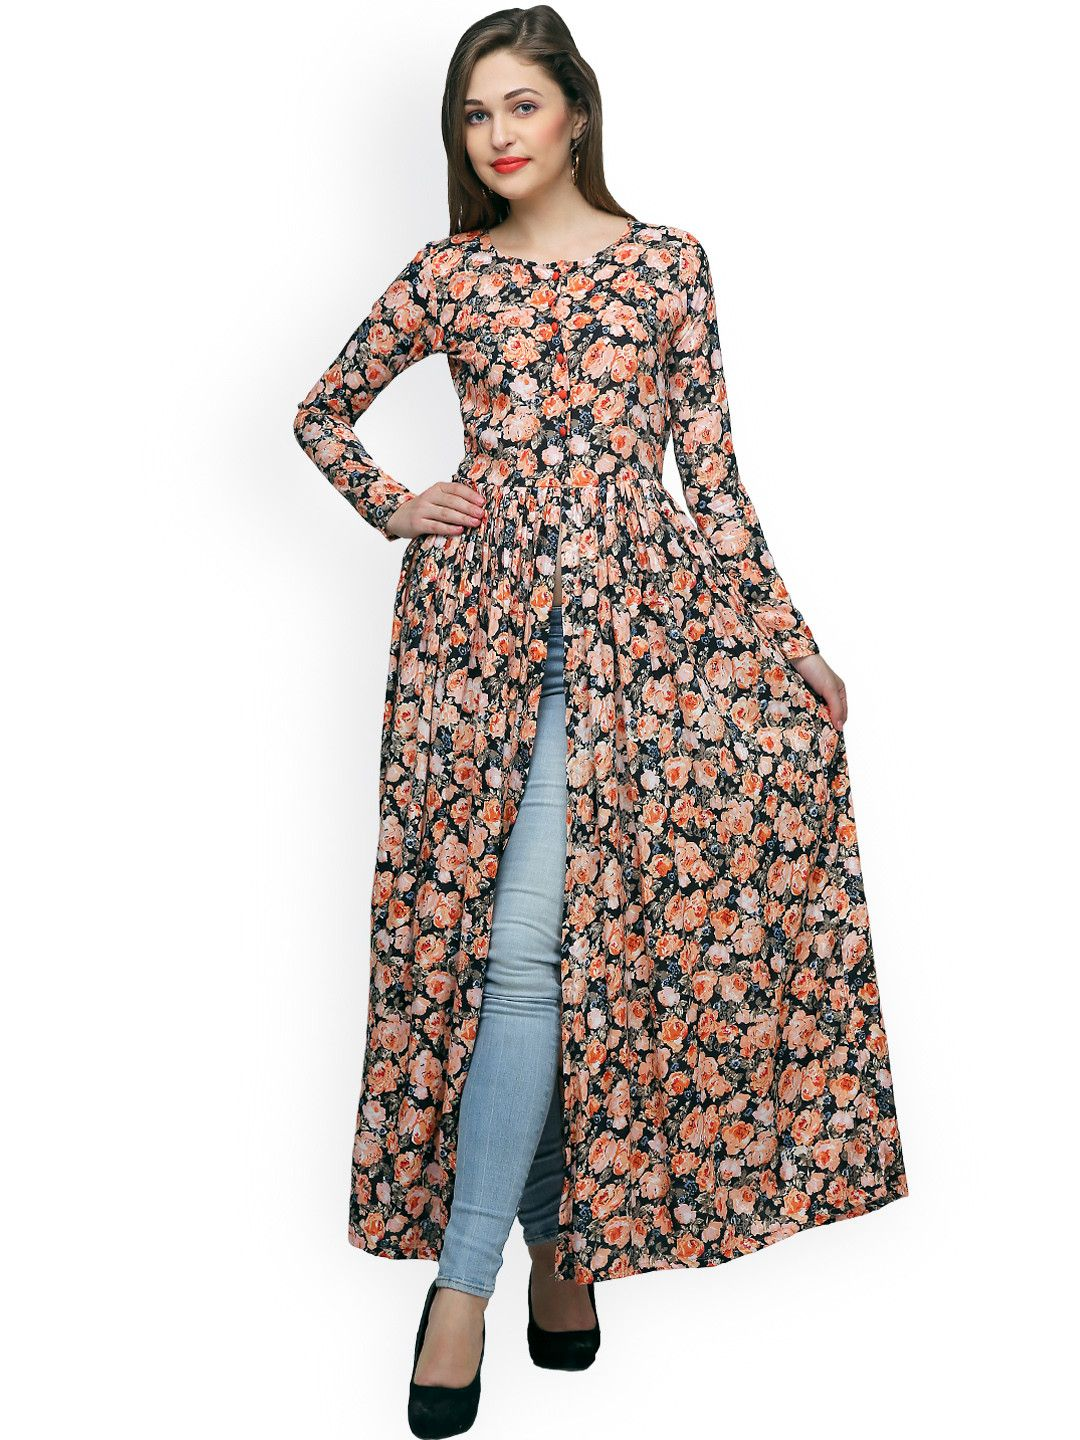 8eb487a4d85 Buy Cation Women Black & Orange Printed Maxi Top - - Apparel for ...